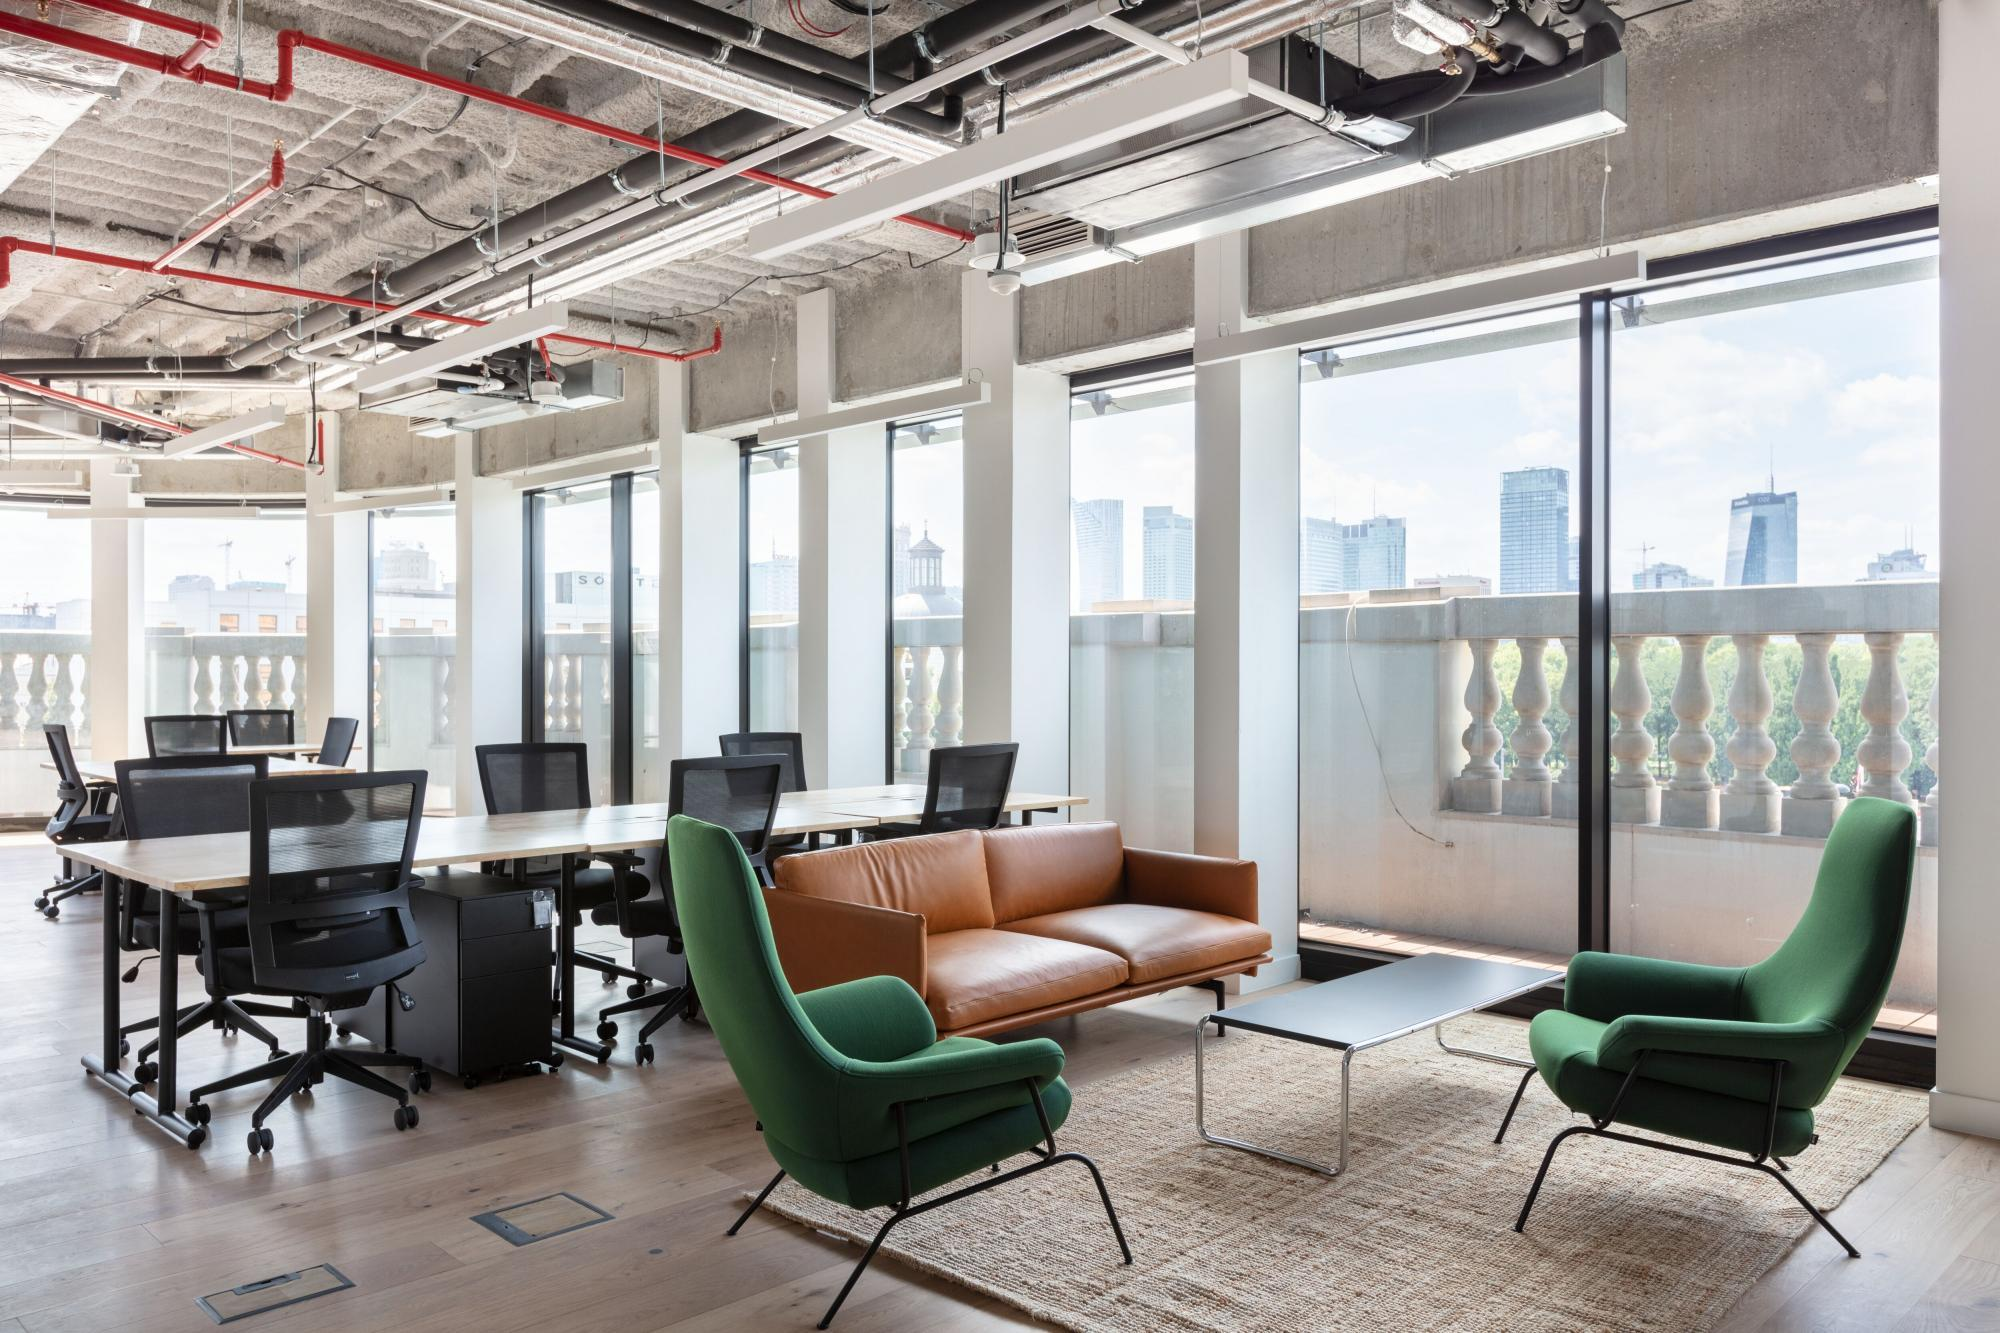 Office for 76 pers. in WeWork Hotel Europejski